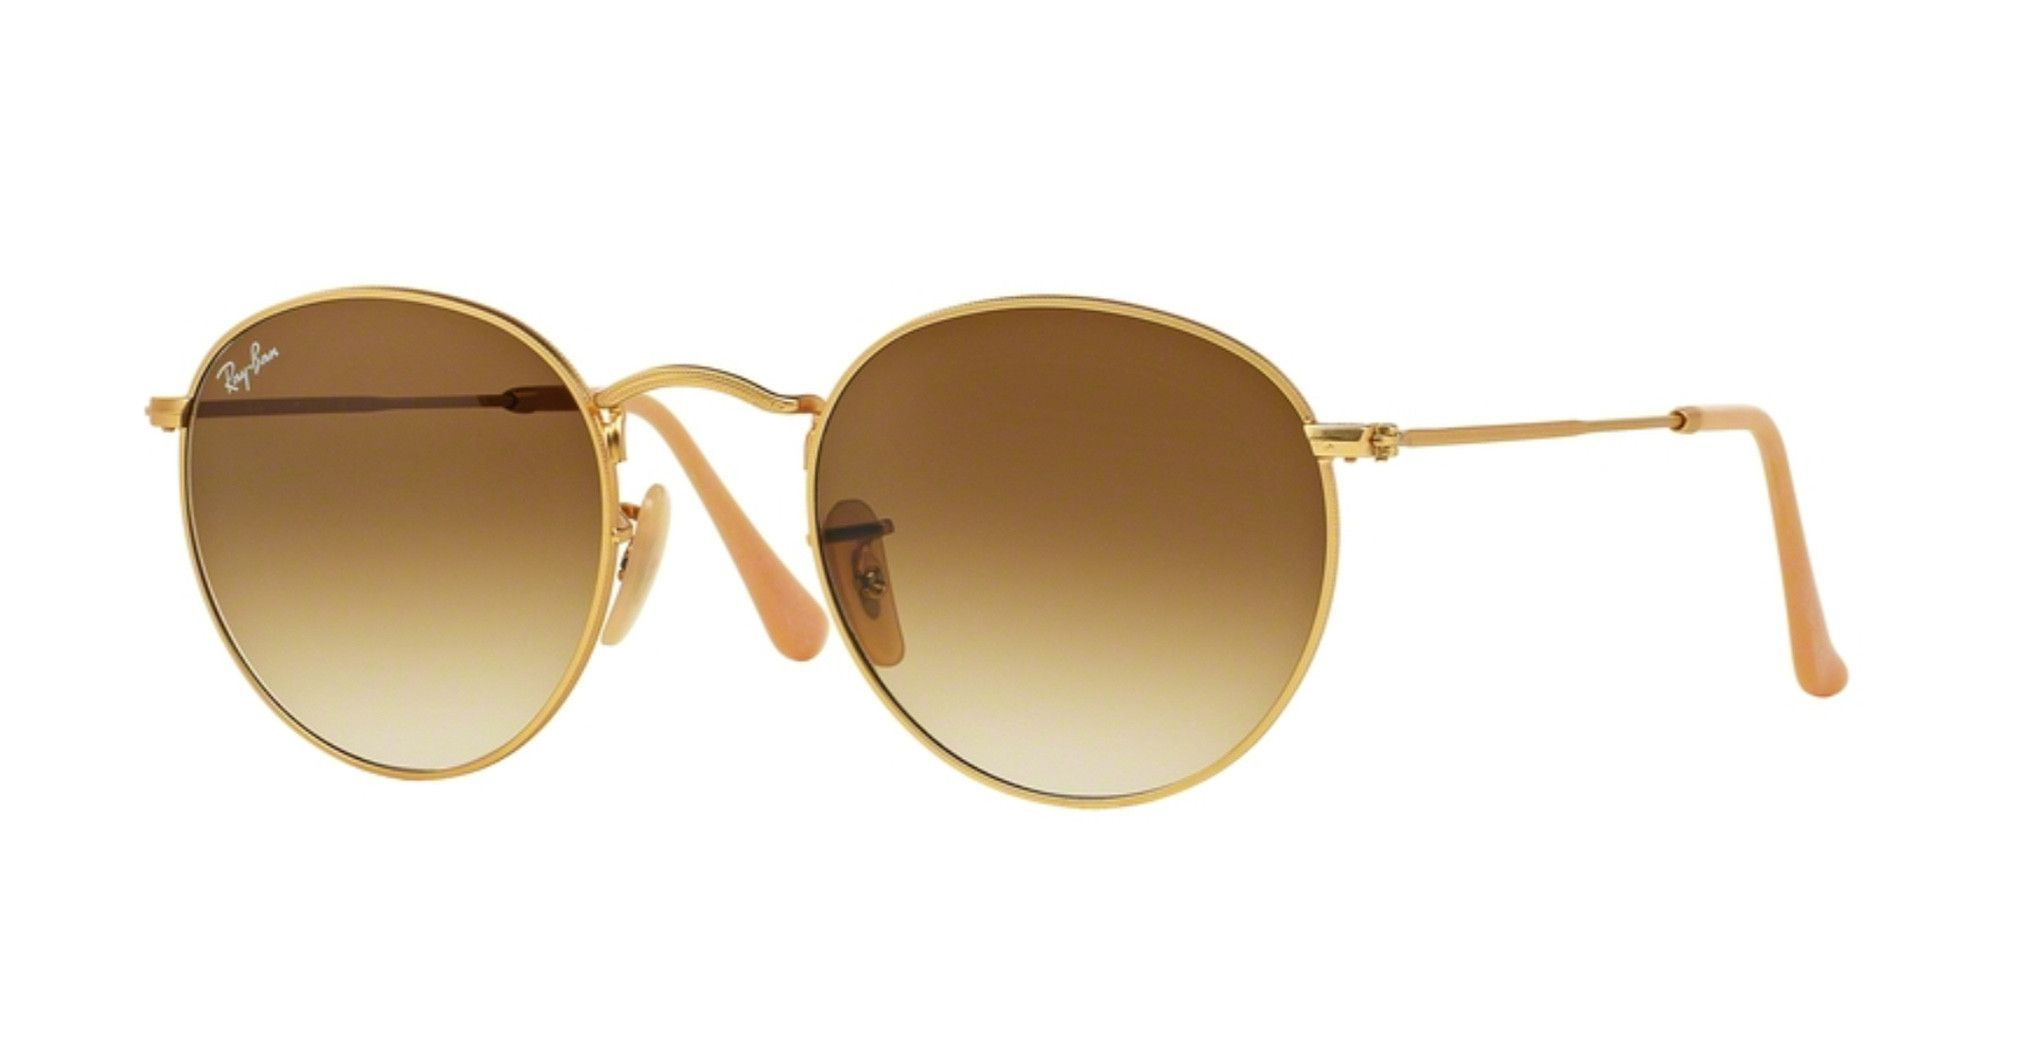 Ray-Ban RB3447-112/51 Matte Gold Round Metal Sunglasses | Products ...